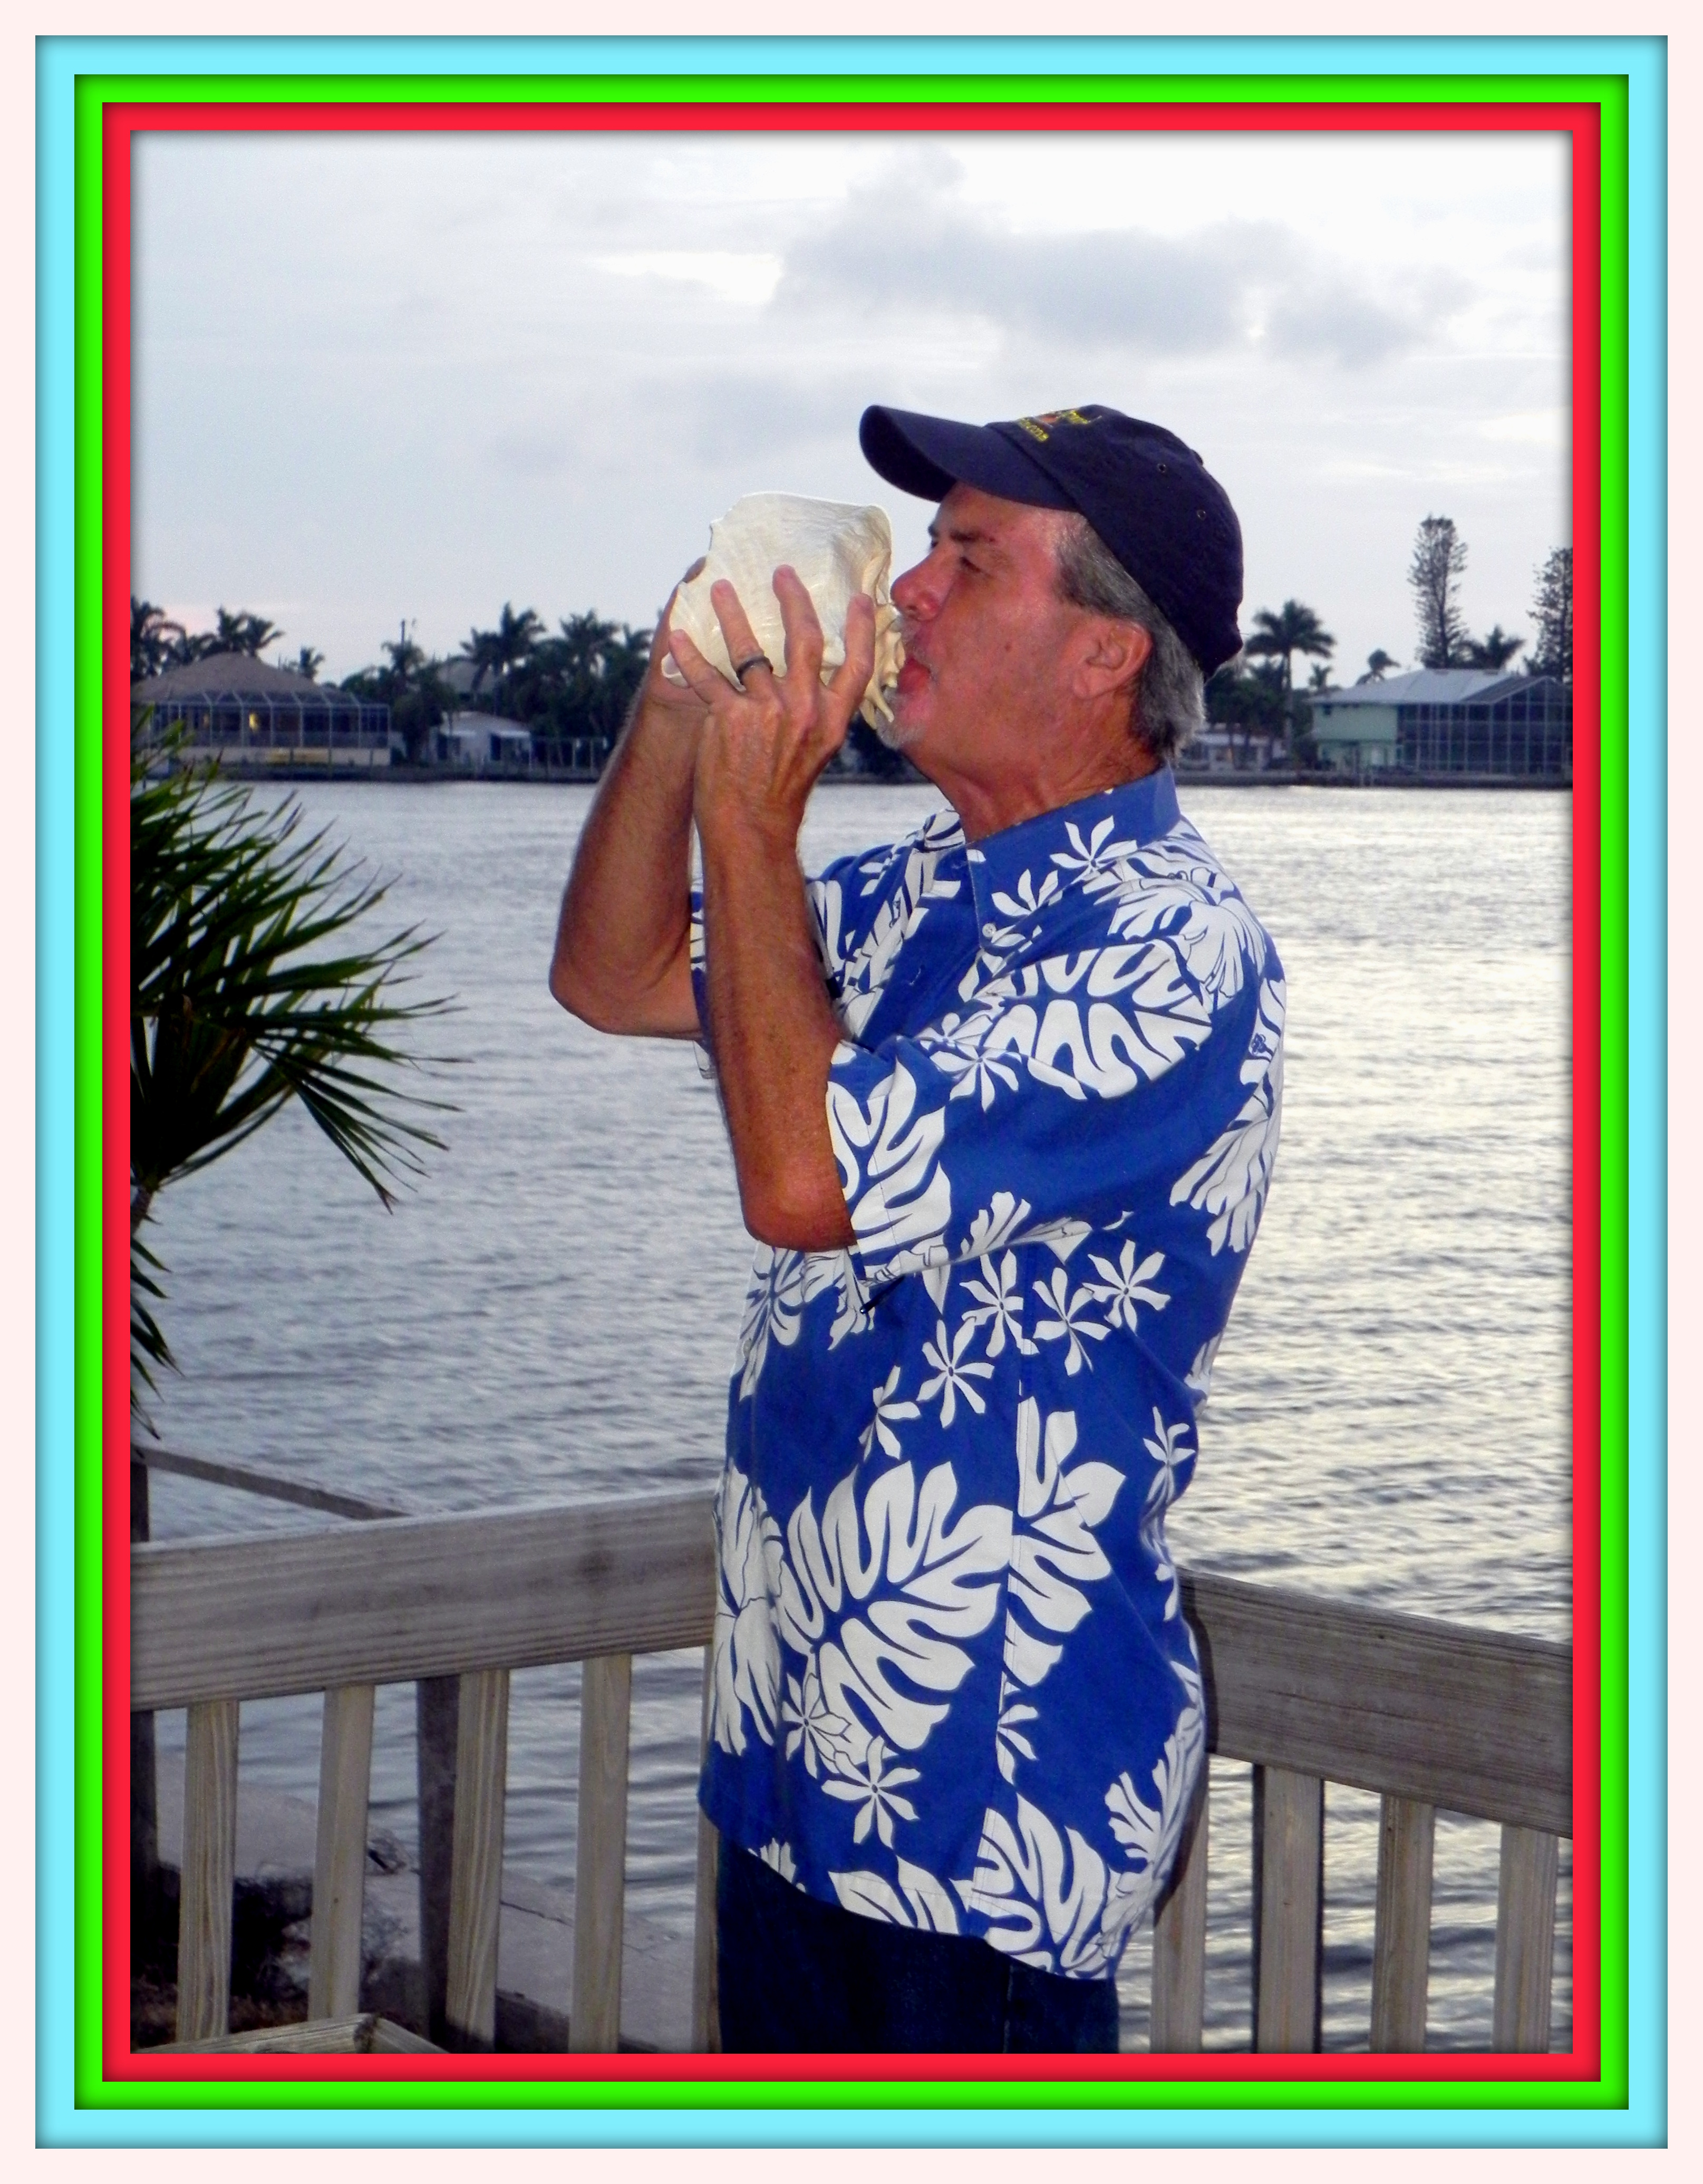 Author Robert N. Macomber sounds the conch at his annual Holiday Party at Bert's Pine Bay Gallery in Matlacha.